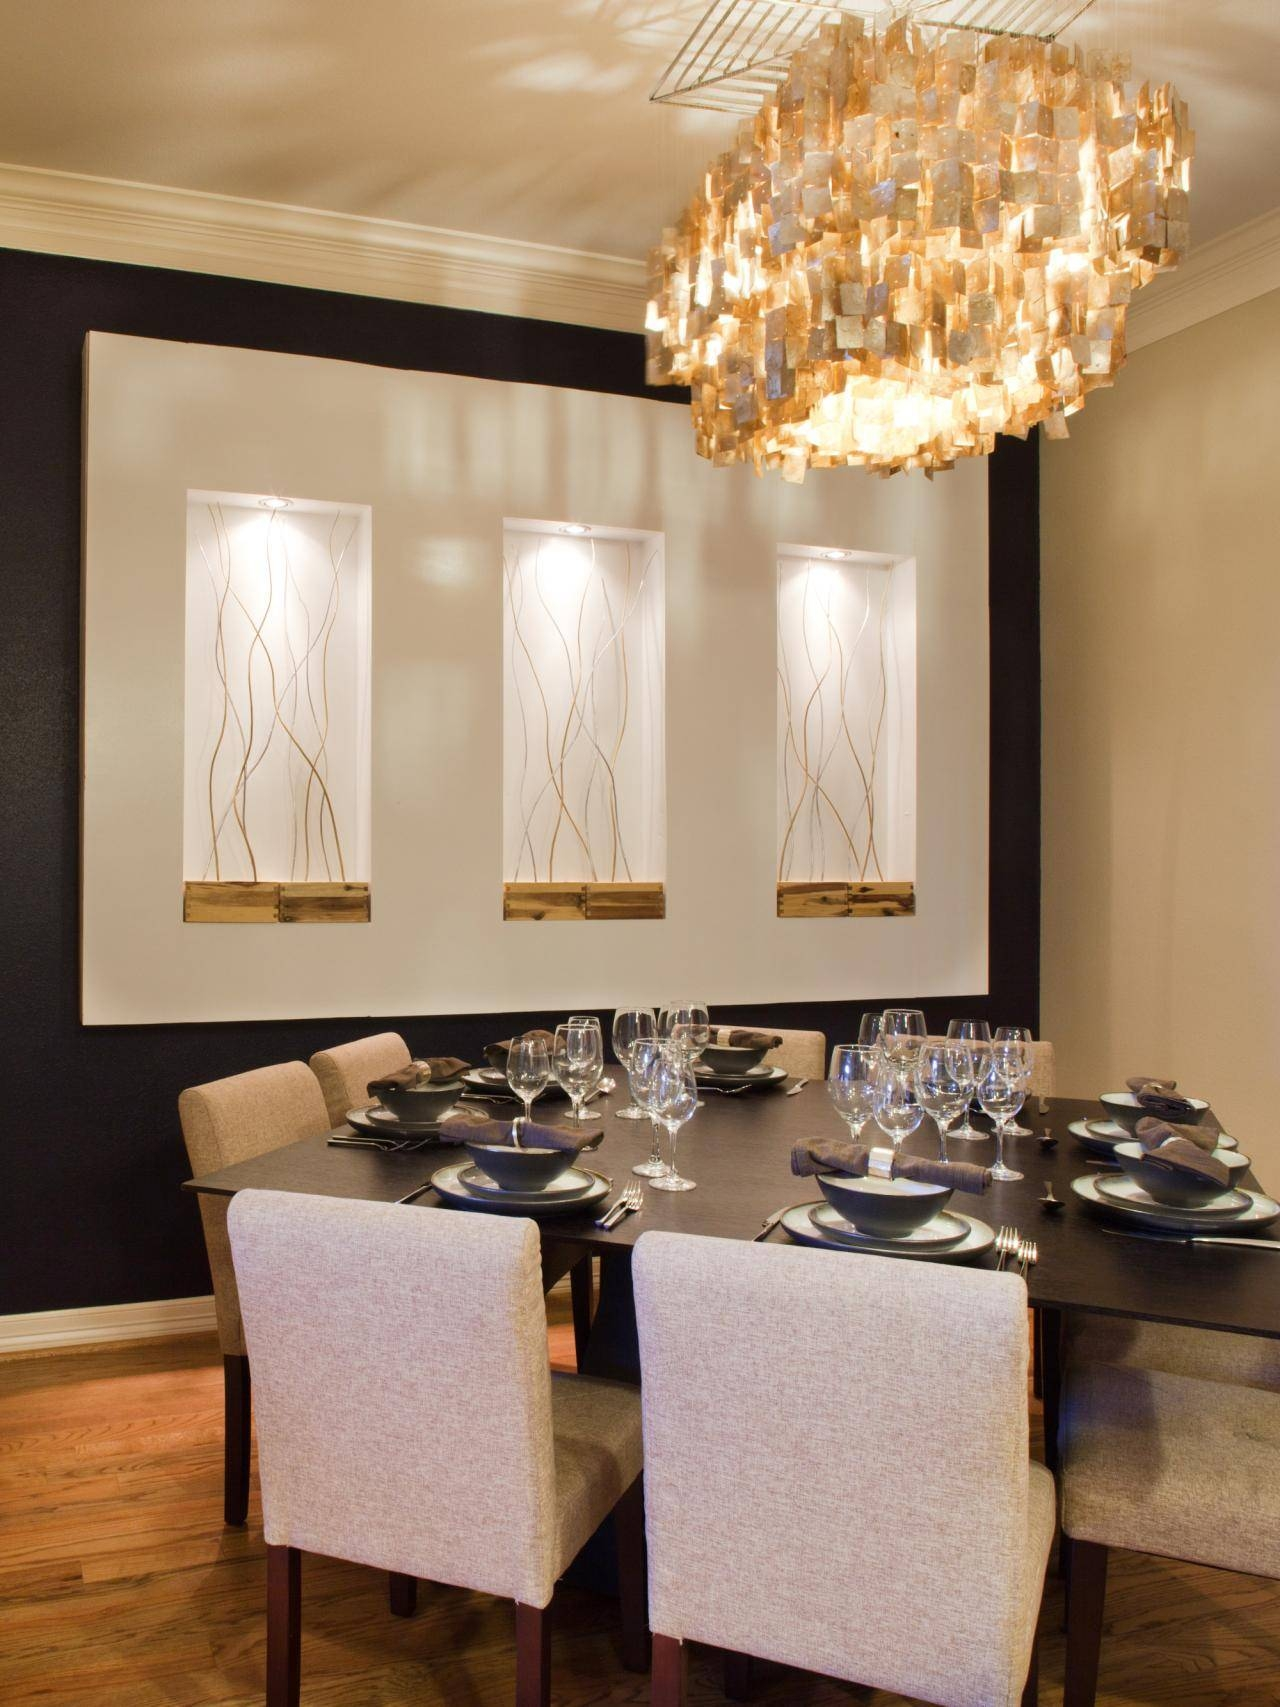 Modern Wall Art For Dining Room – Alliancemv Within Most Recently Released Modern Wall Art For Dining Room (View 2 of 15)